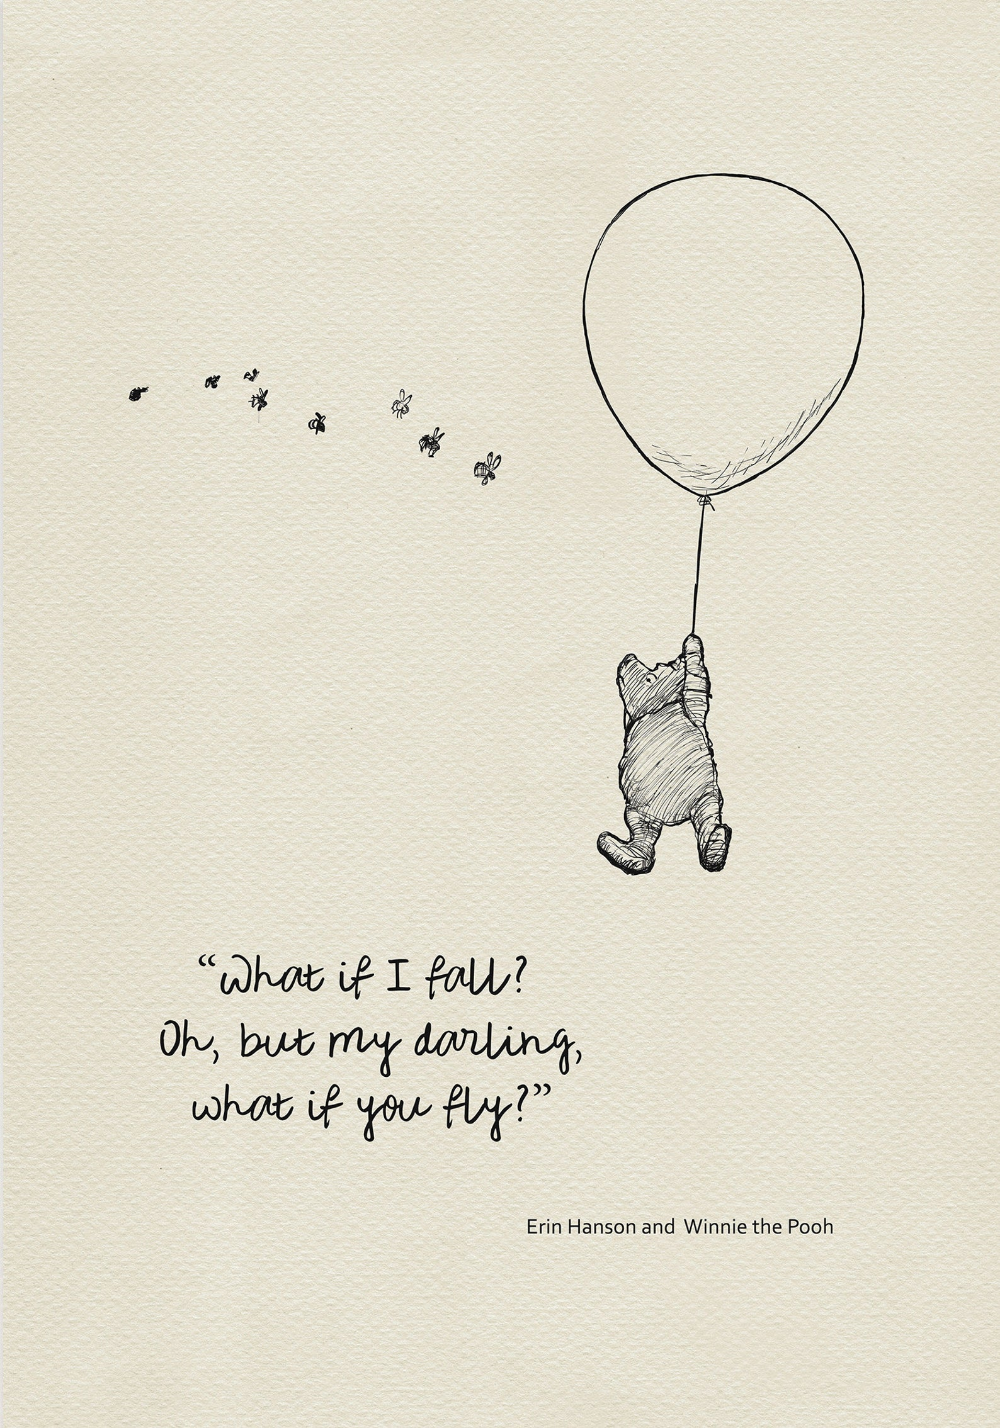 What if I fall? Oh,but my darling,what if you fly?